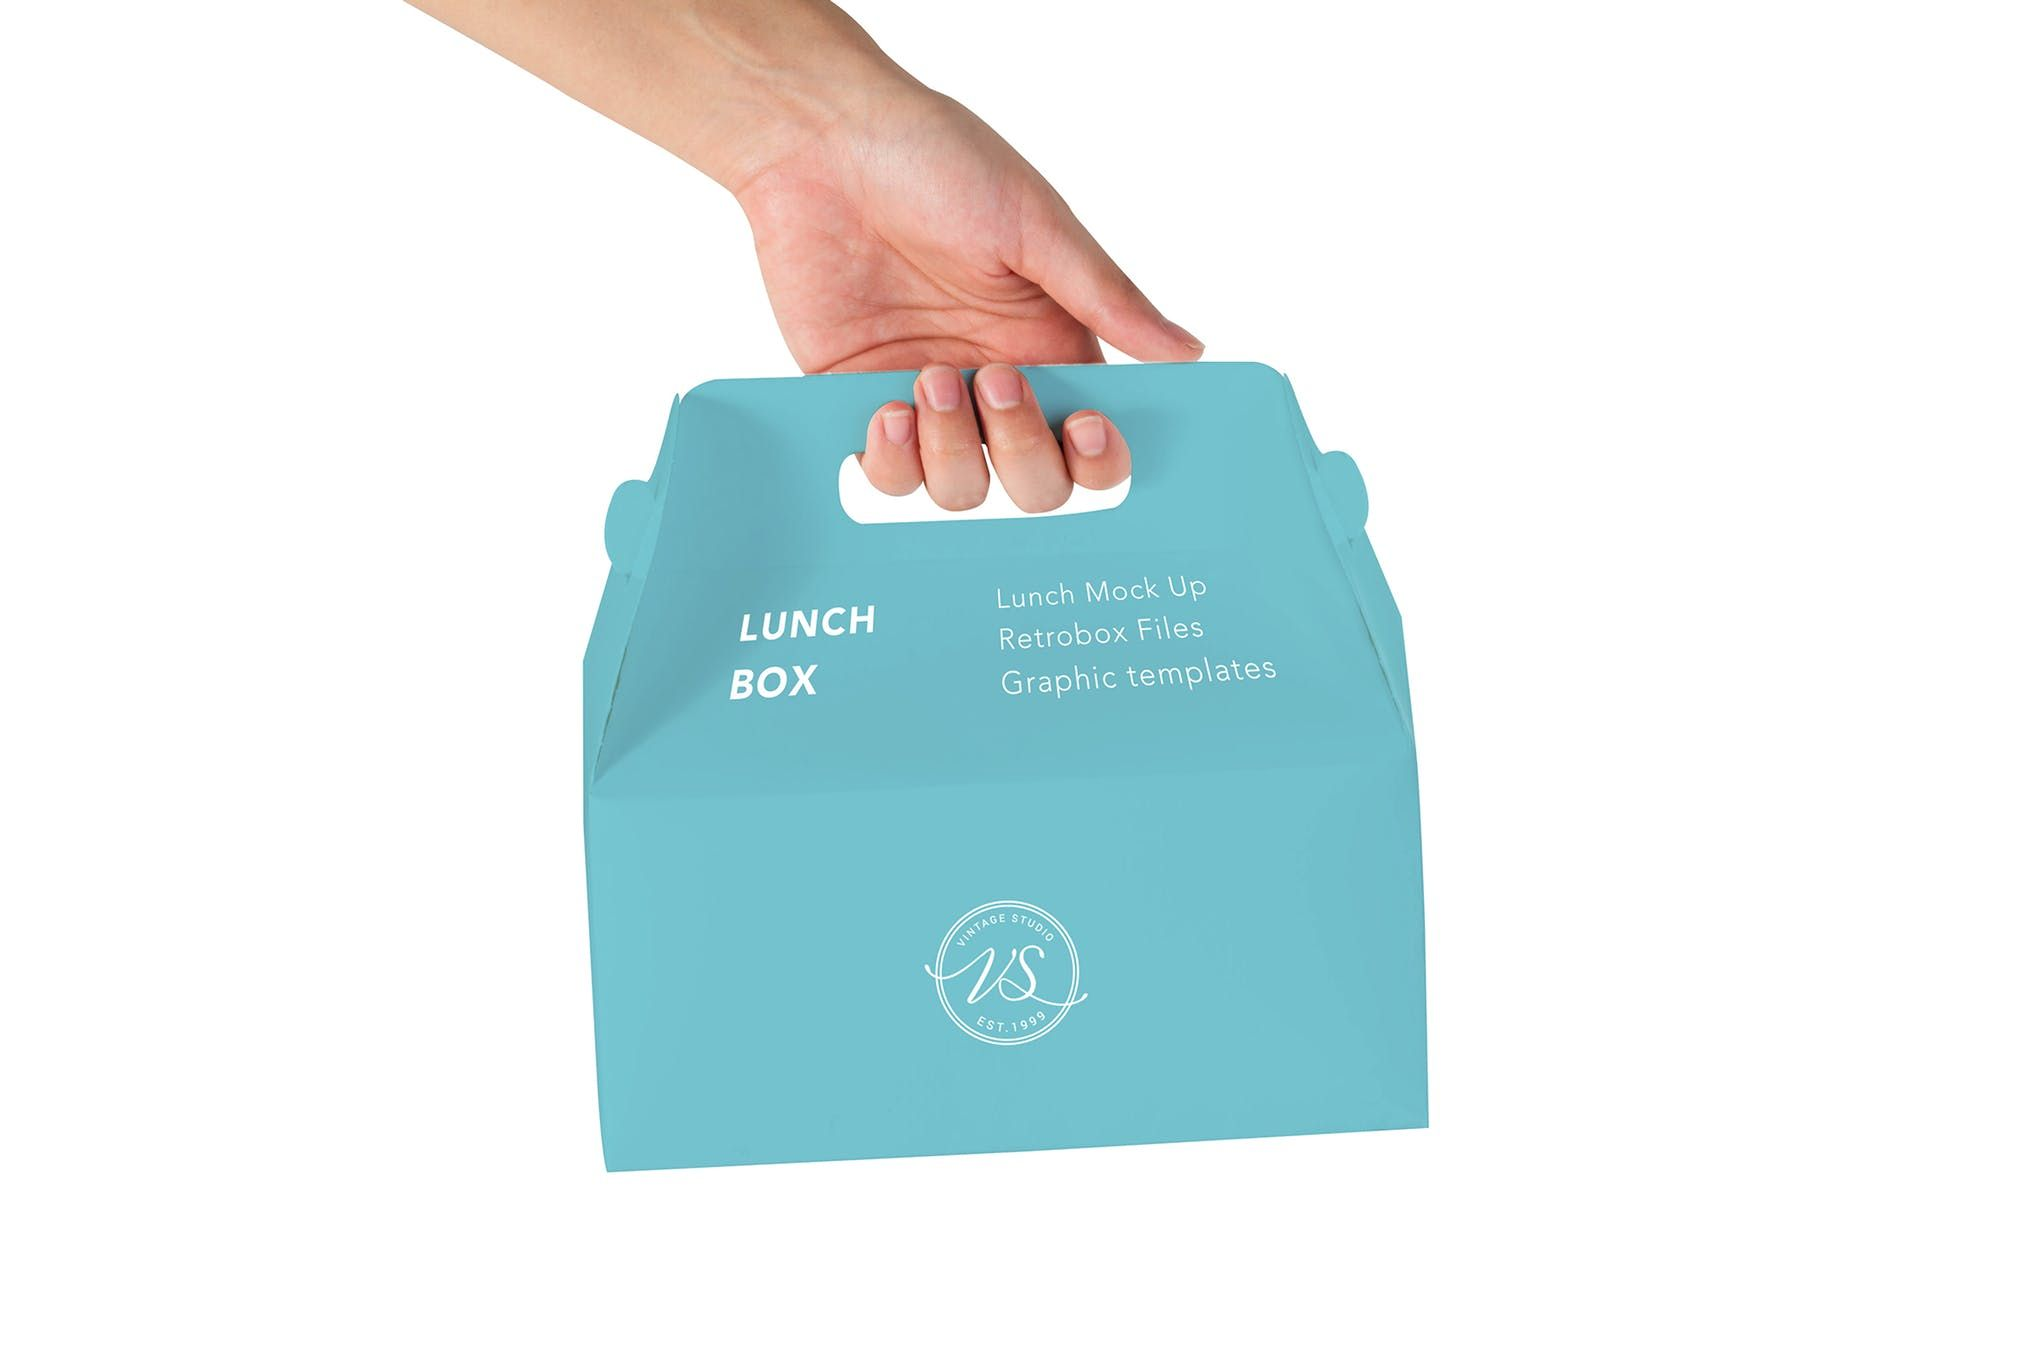 Download Cover Image For Lunch Box Mock Up Lunch Box Mocking Mockup